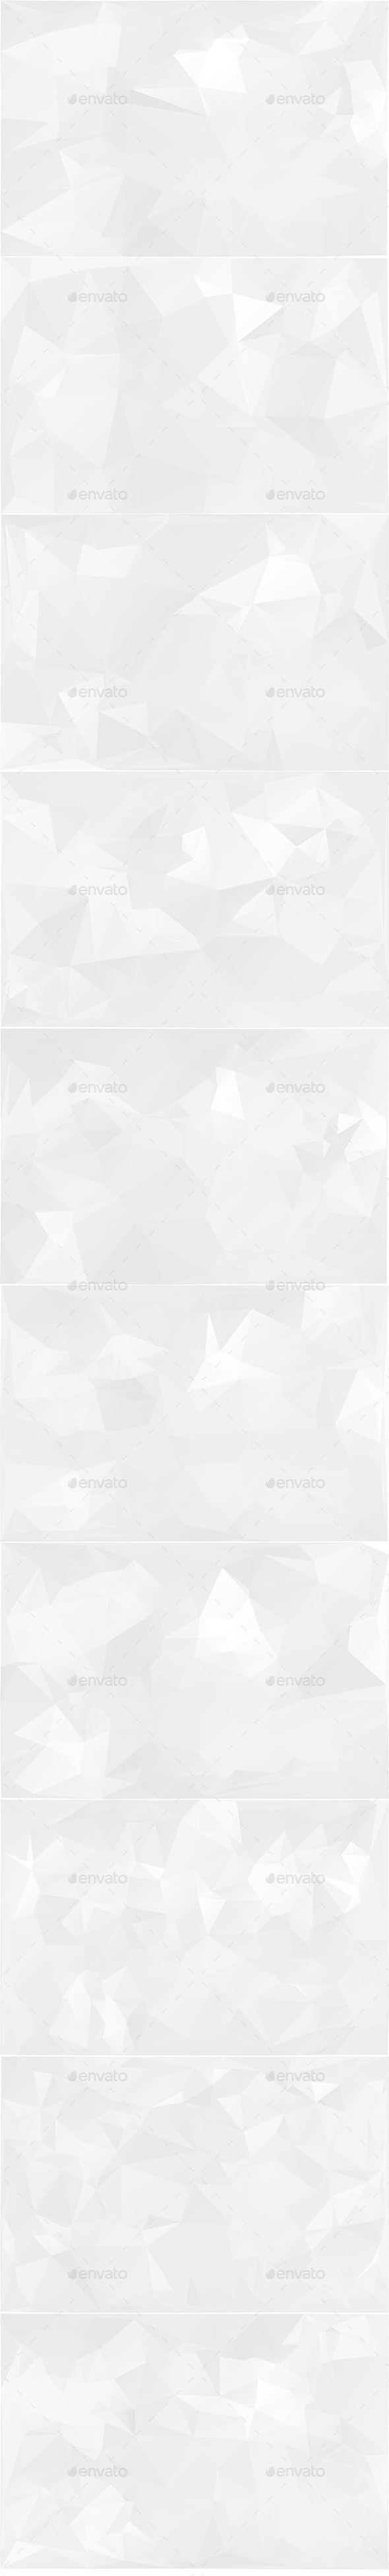 White Polygonal Backgrounds